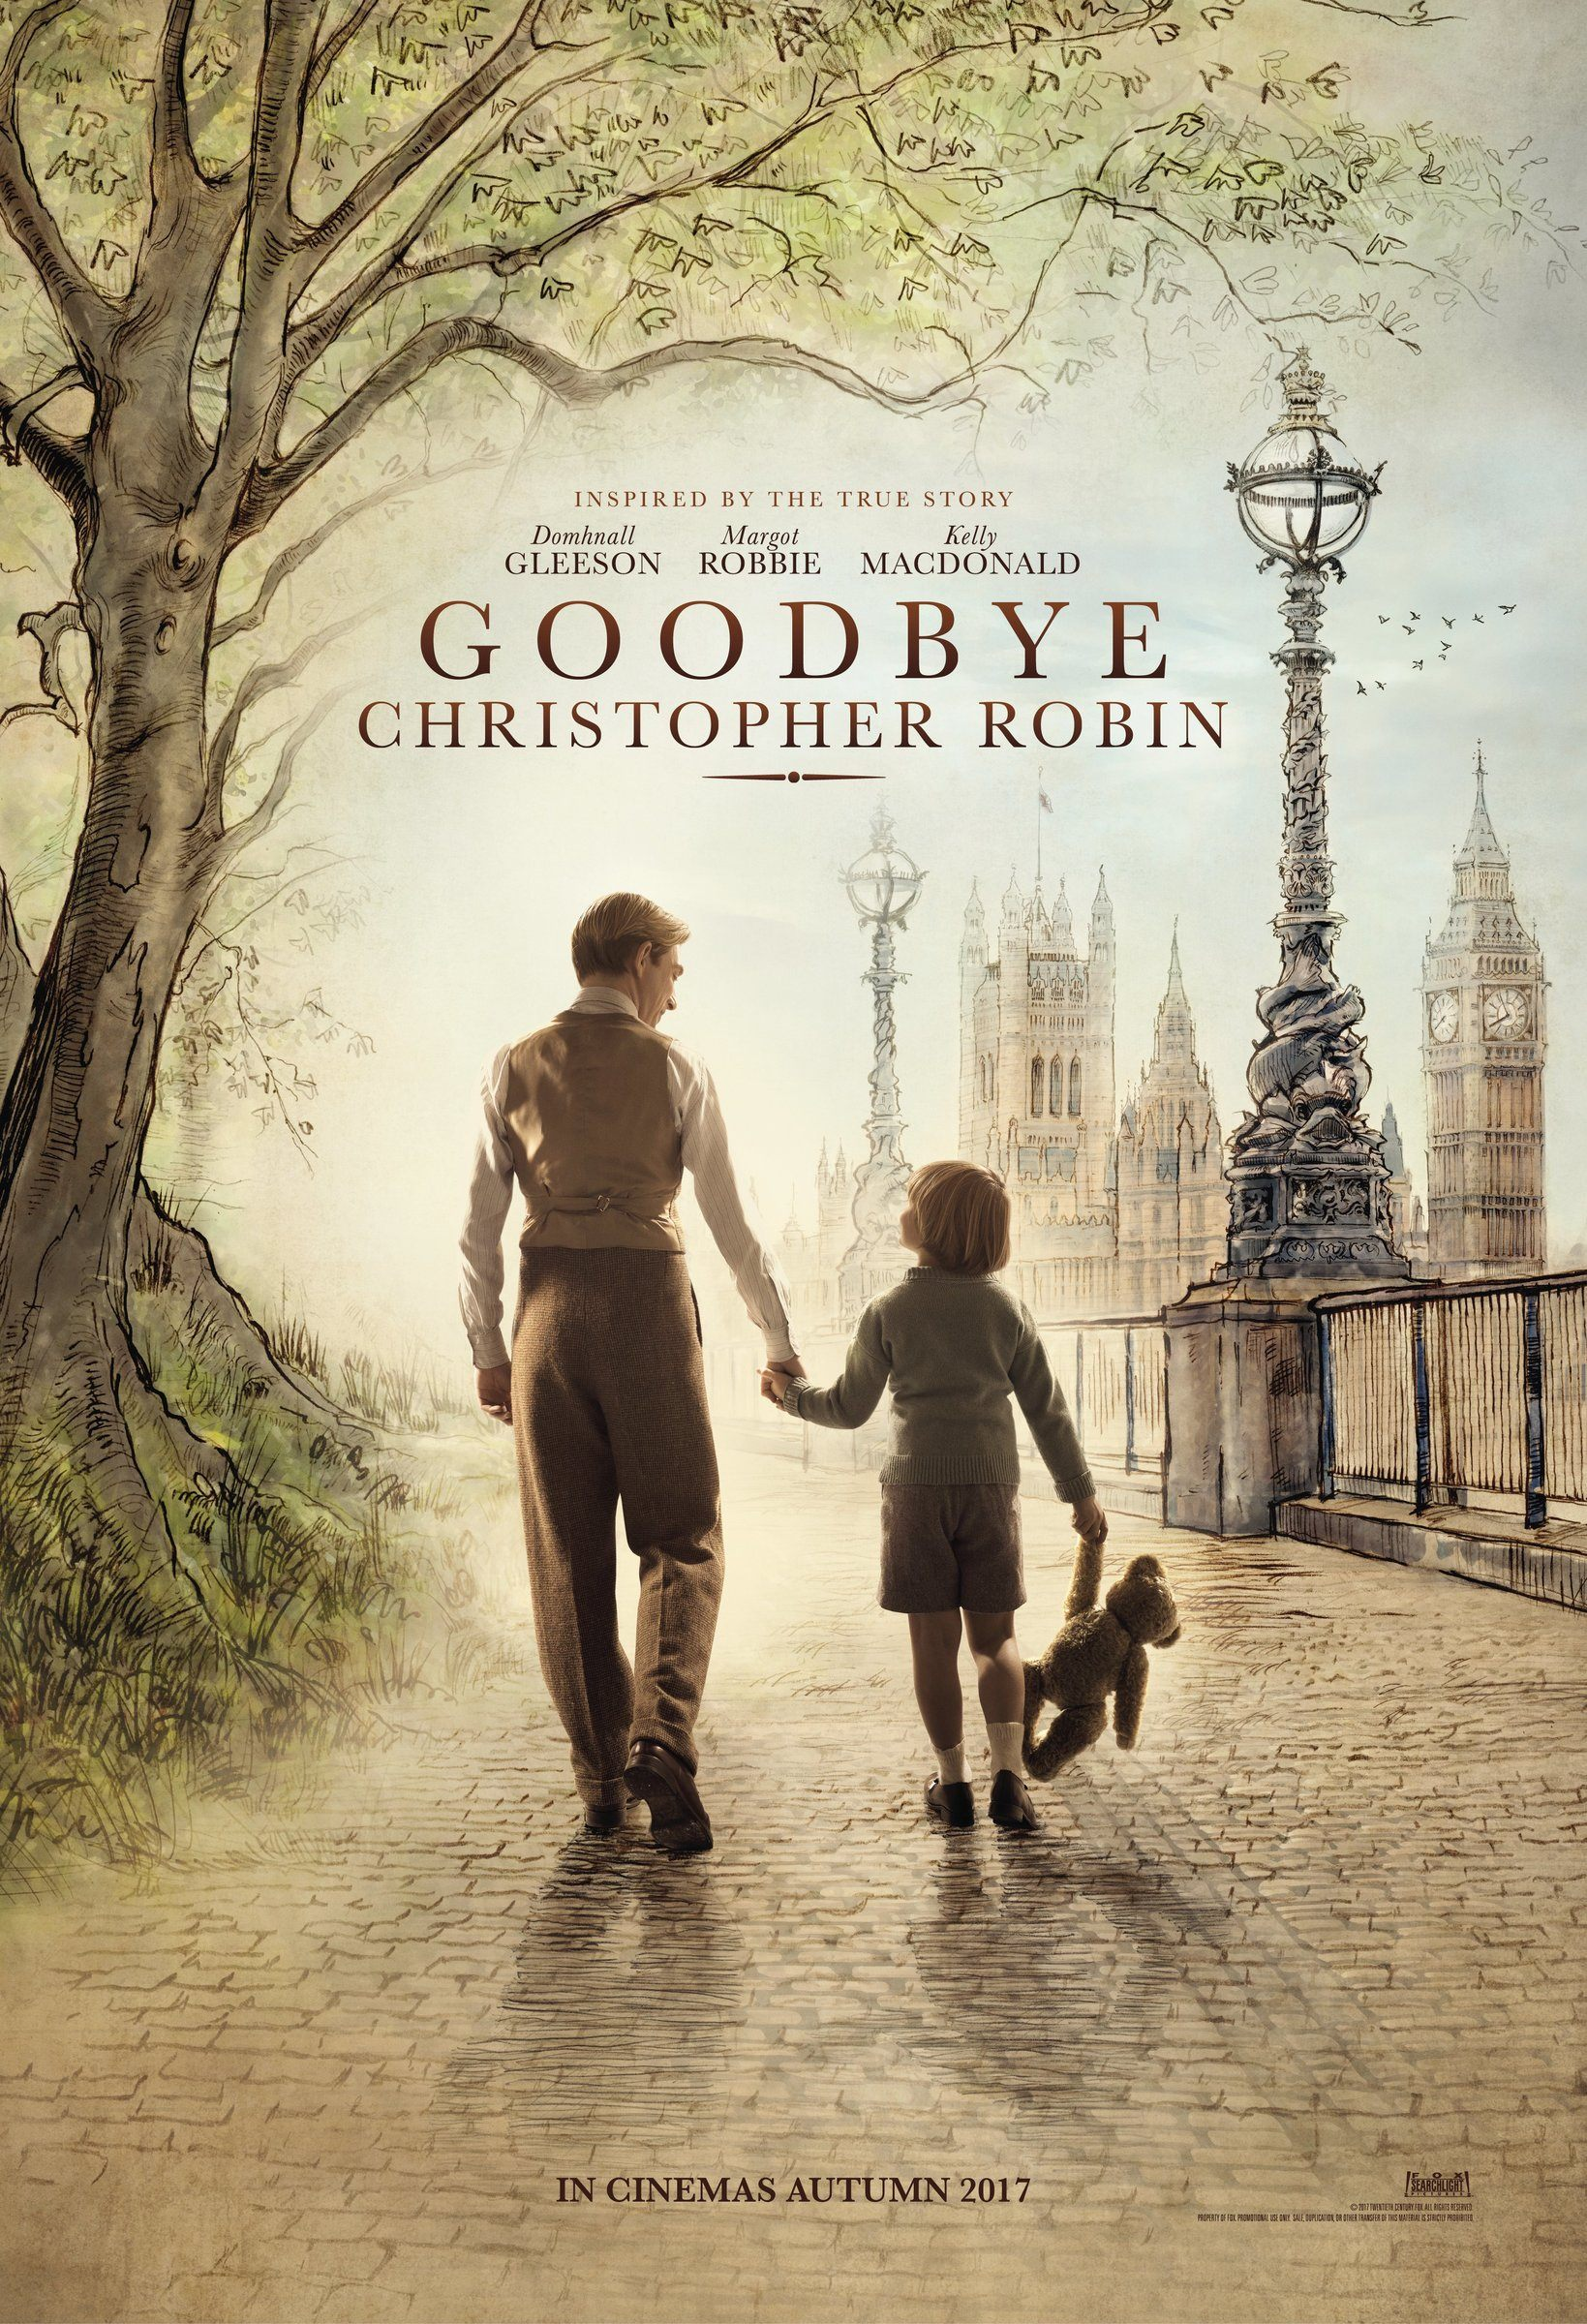 Goodbye Christopher Robin, Amy Robsart Hall, Syderstone PE31 8SD | Winnie the Pooh's world is enchanting, but it proved to be less so for the author and his son. | cinema